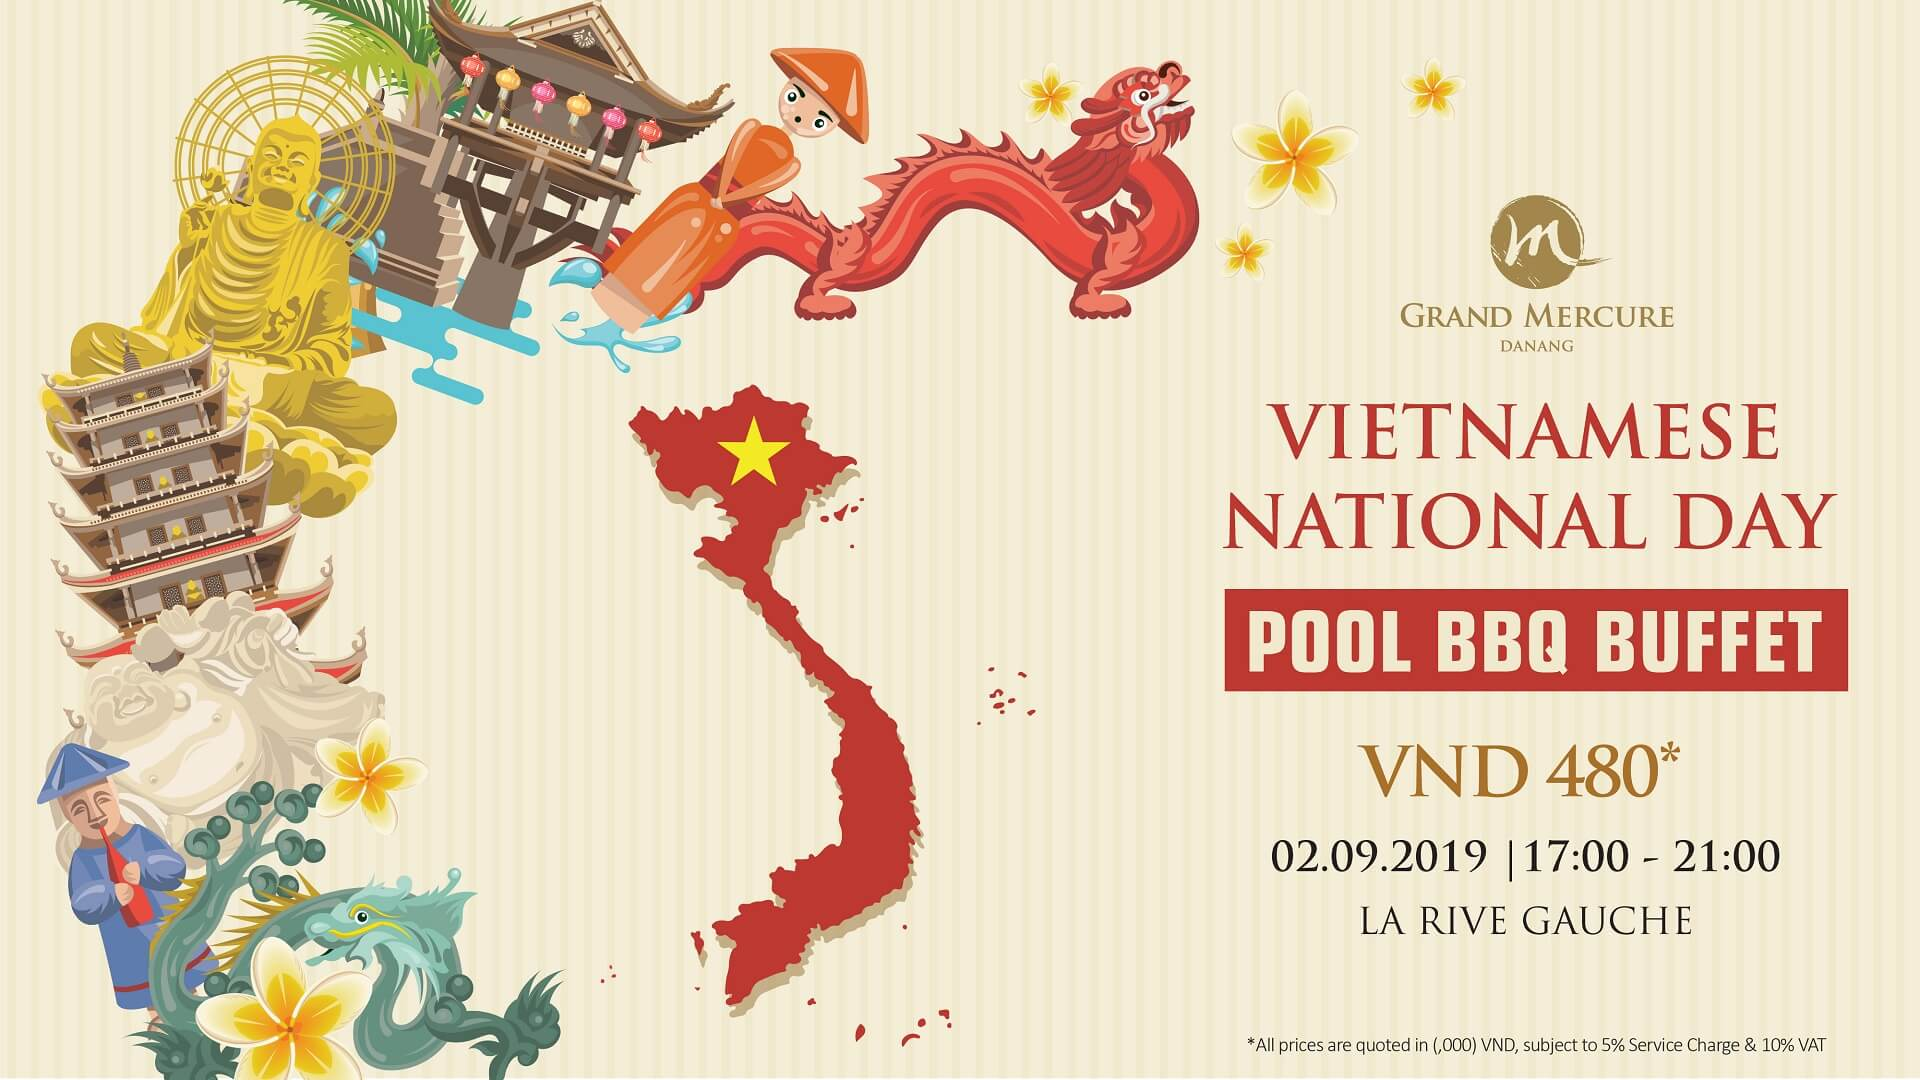 Celebrate Vietnamese National Day with Pool BBQ Buffet at